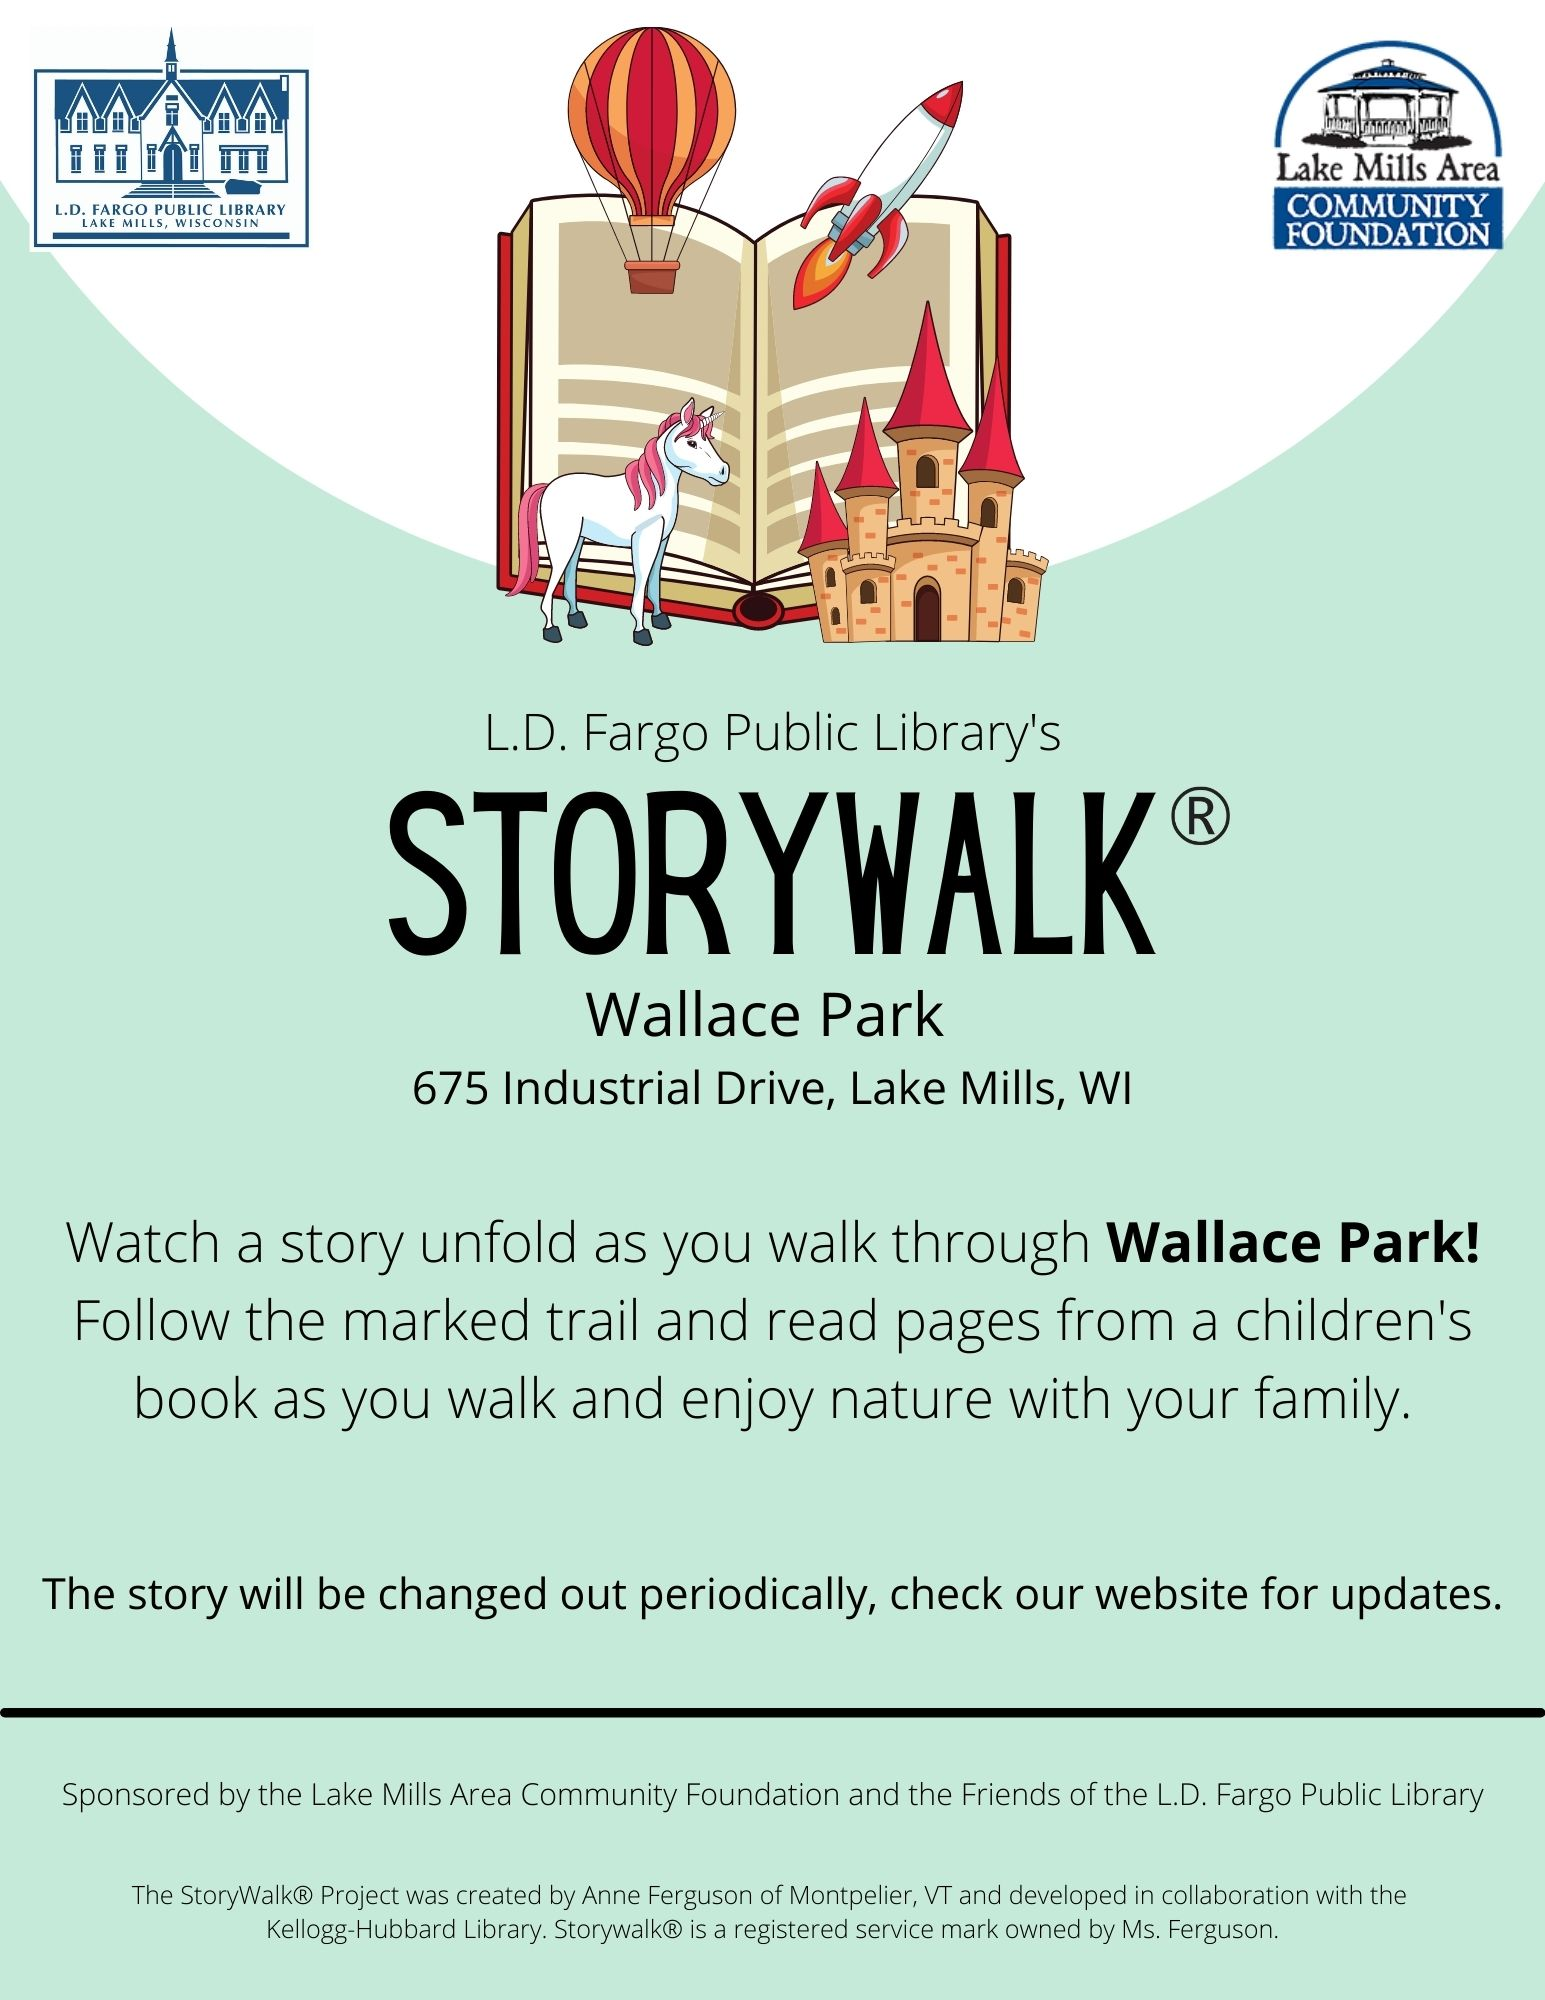 L.D. Fargo Public Library's Permanent StoryWalk® in Wallace Park!  675 Industrial Drive, Lake Mills, WI.  Follow the marked trail and read pages from a children's book as you walk and enjoy nature with your family.